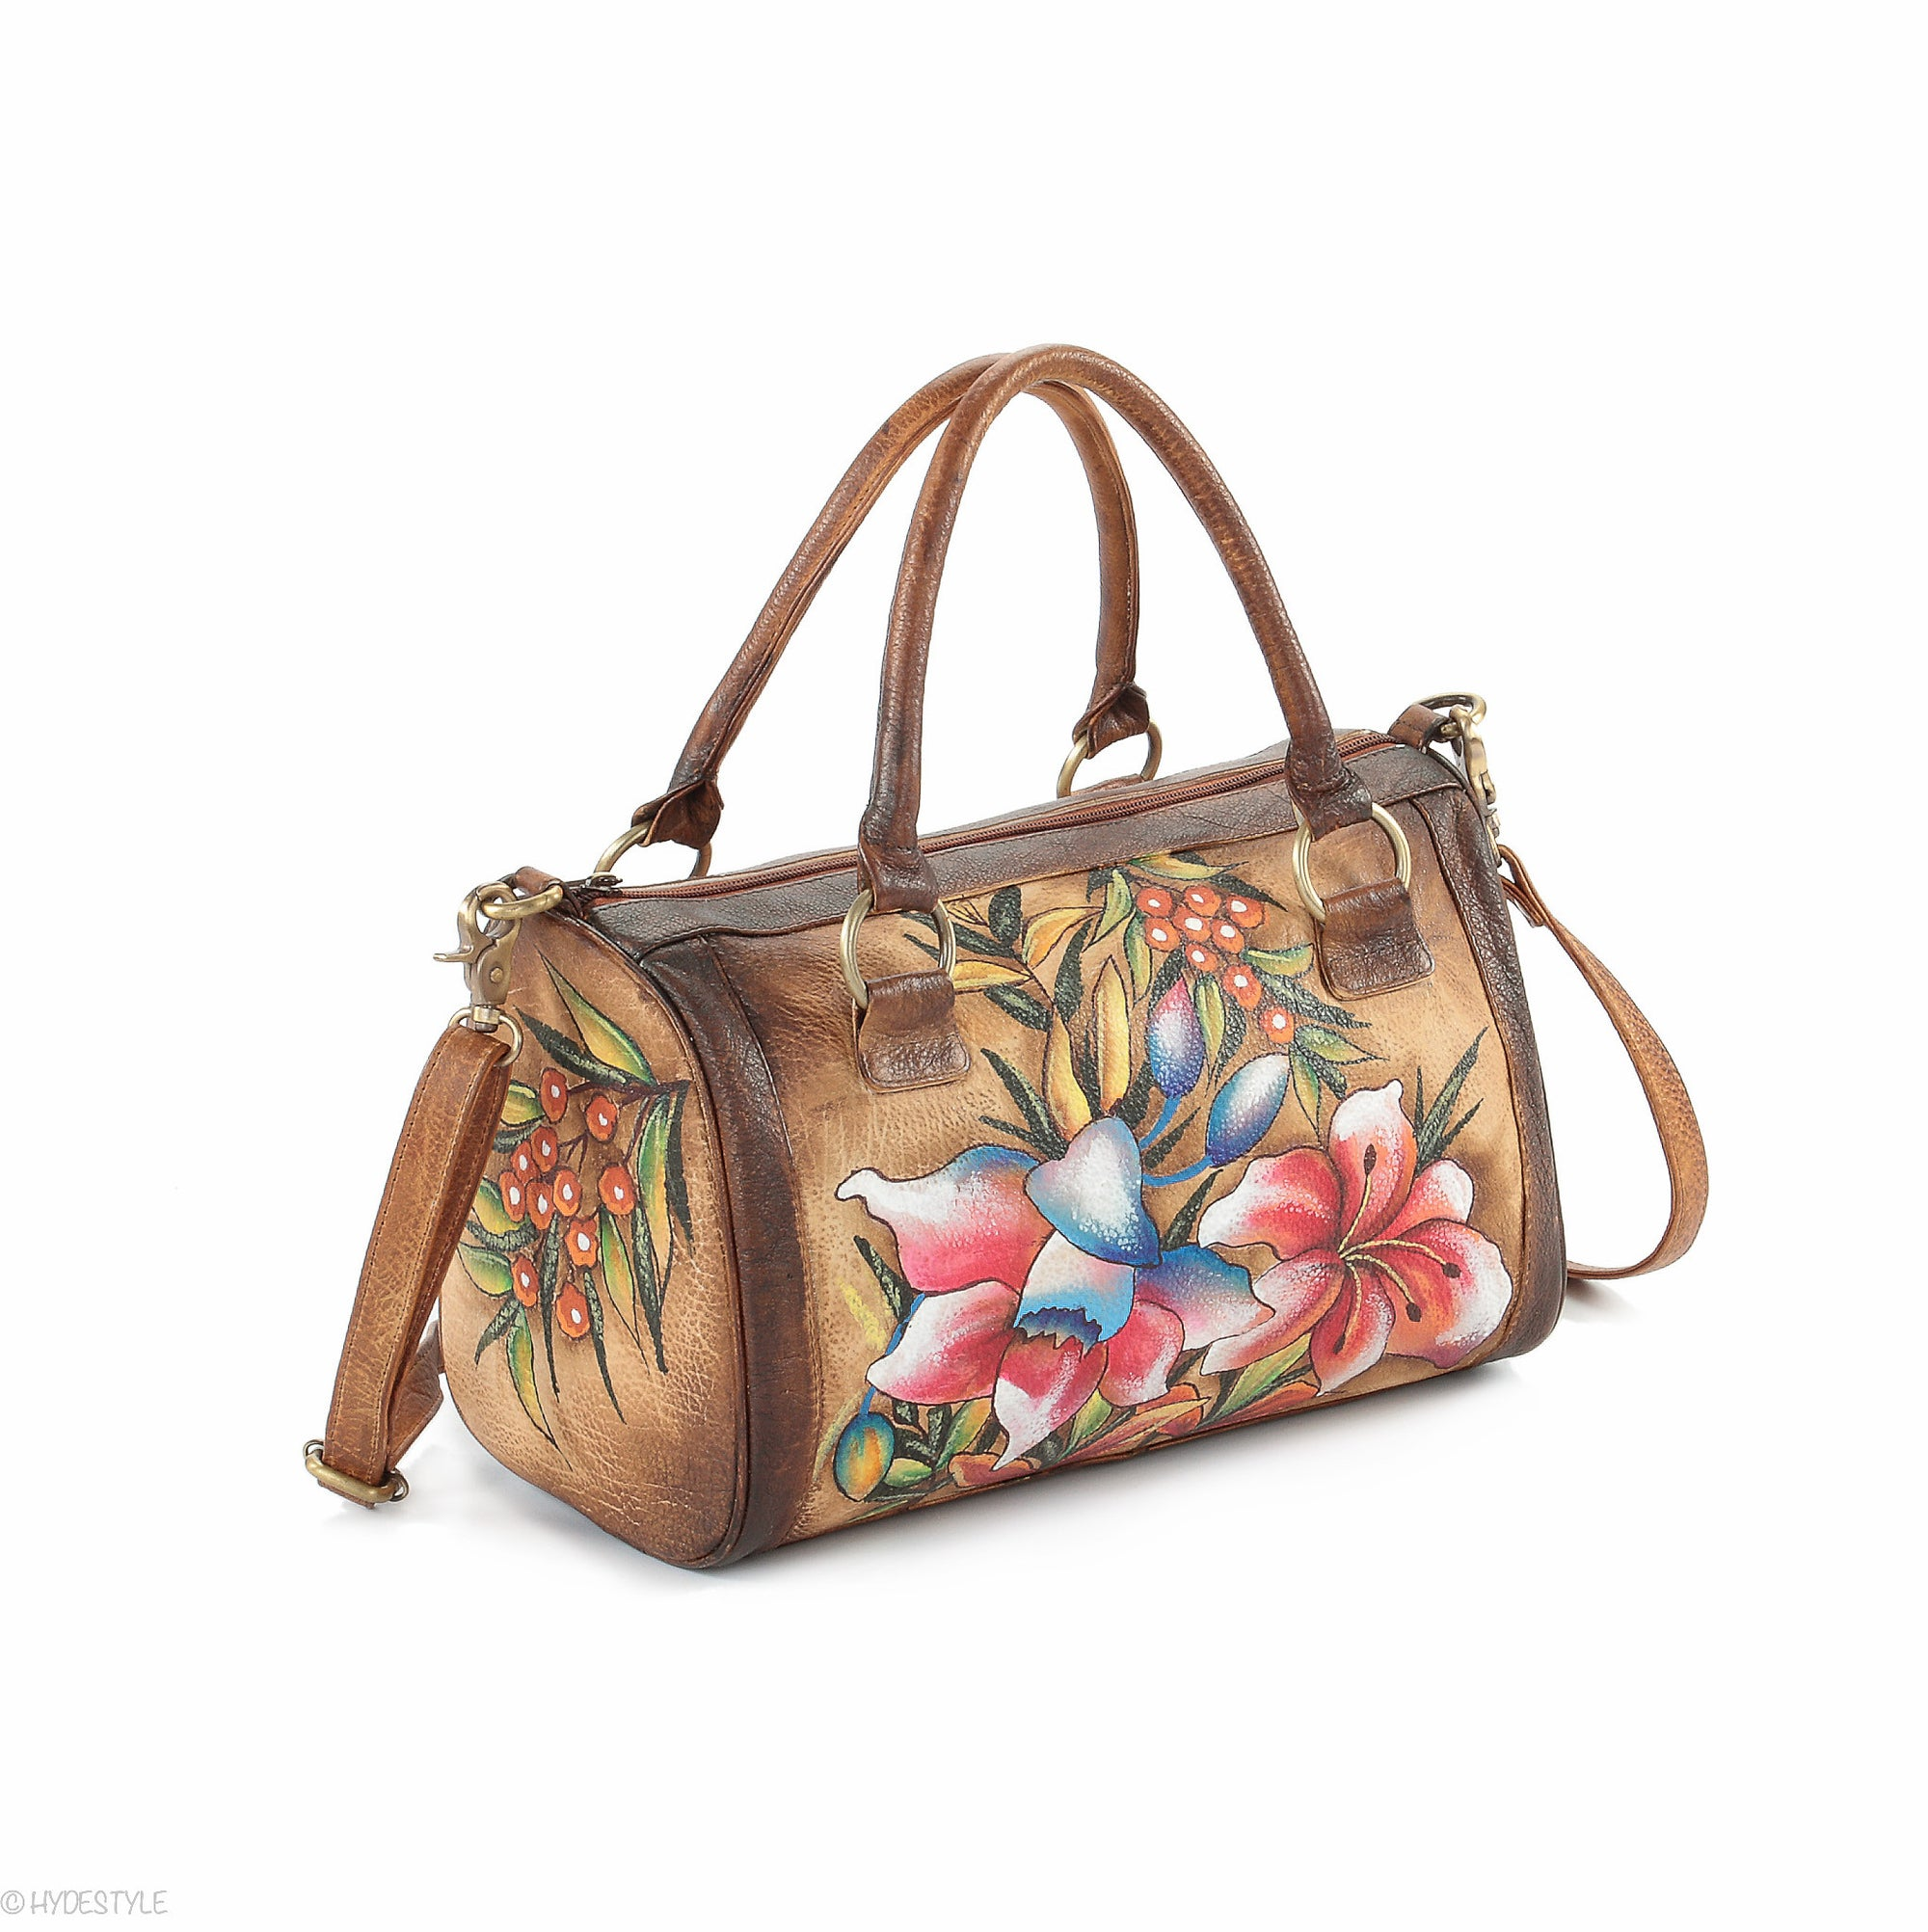 Picta Manu hand painted leather bowling bag #LB18 Floral Berry